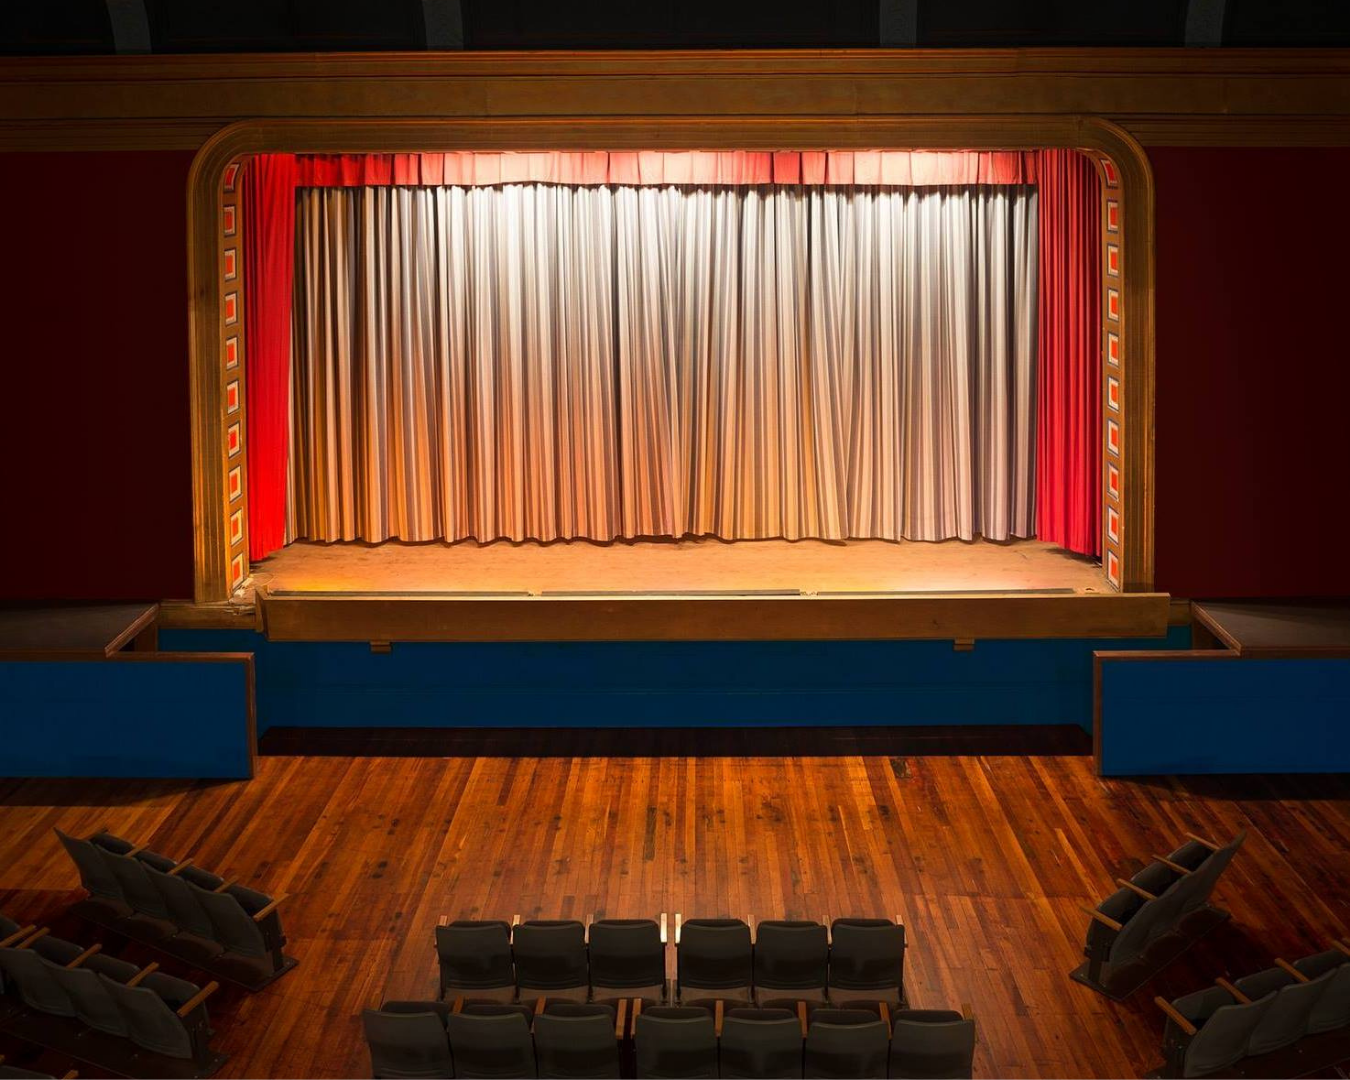 An empty theatre with curtains drawn and spotlight on stage